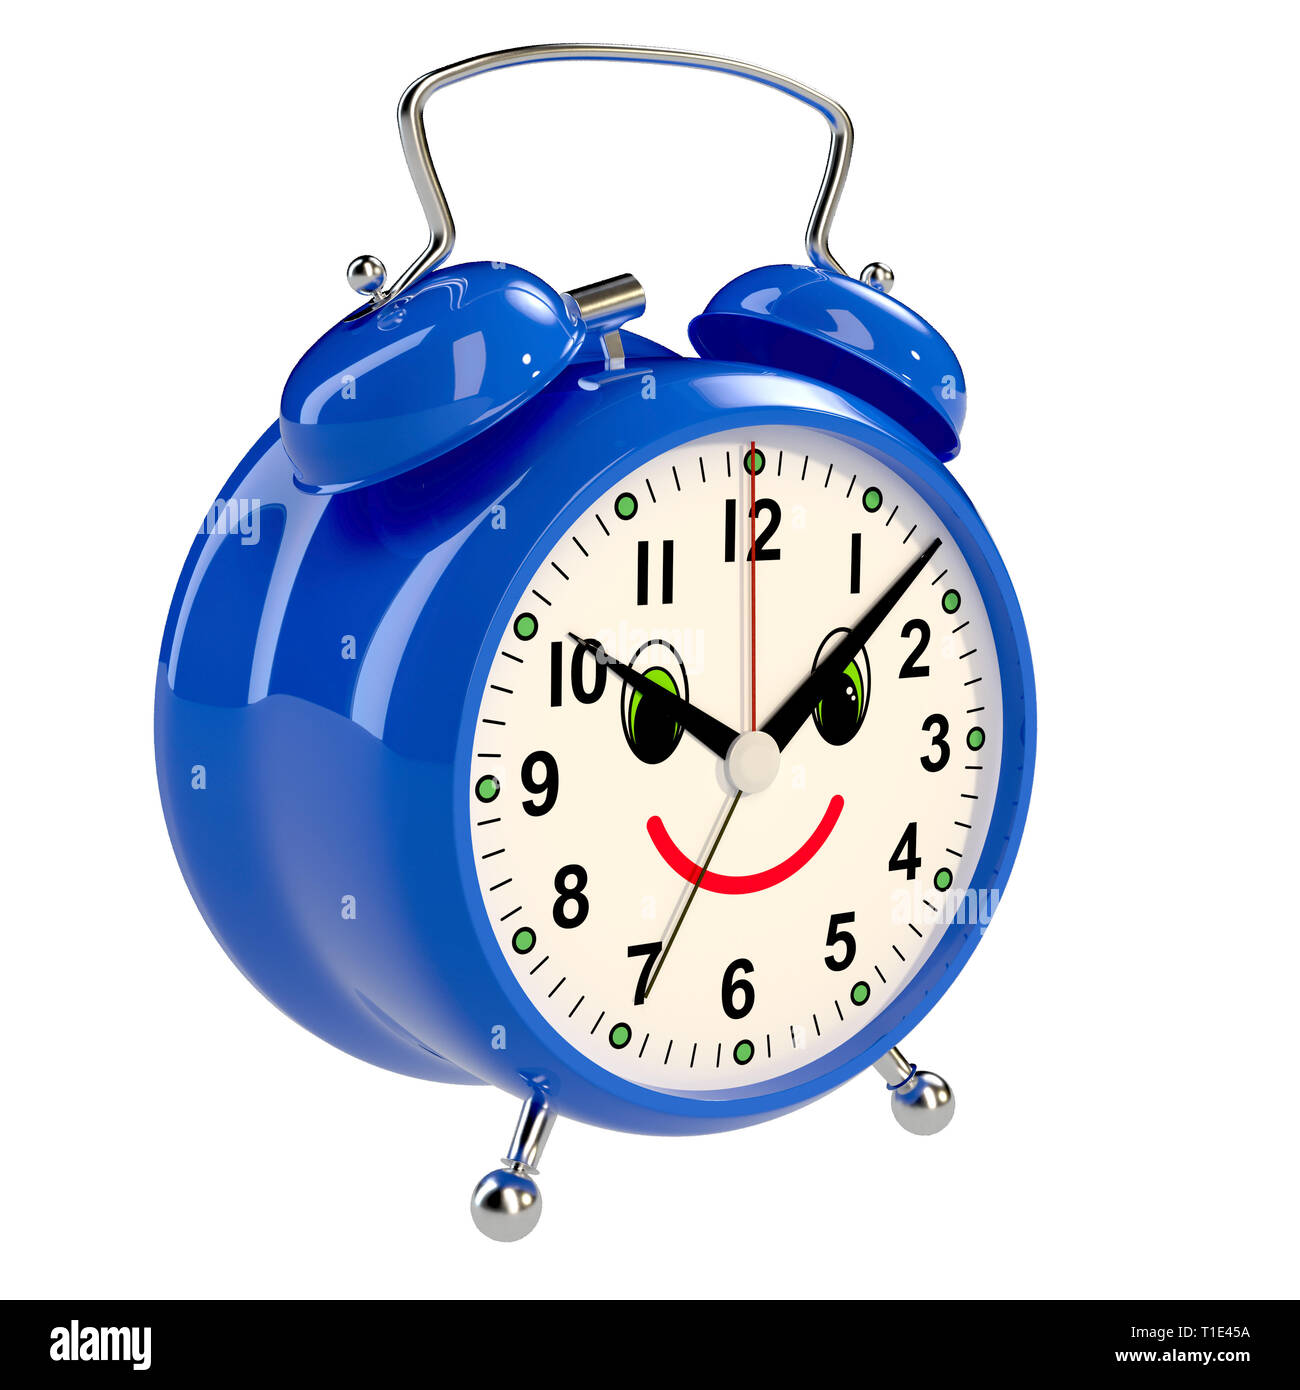 Funny Clock Stock Photos Amp Funny Clock Stock Images Alamy